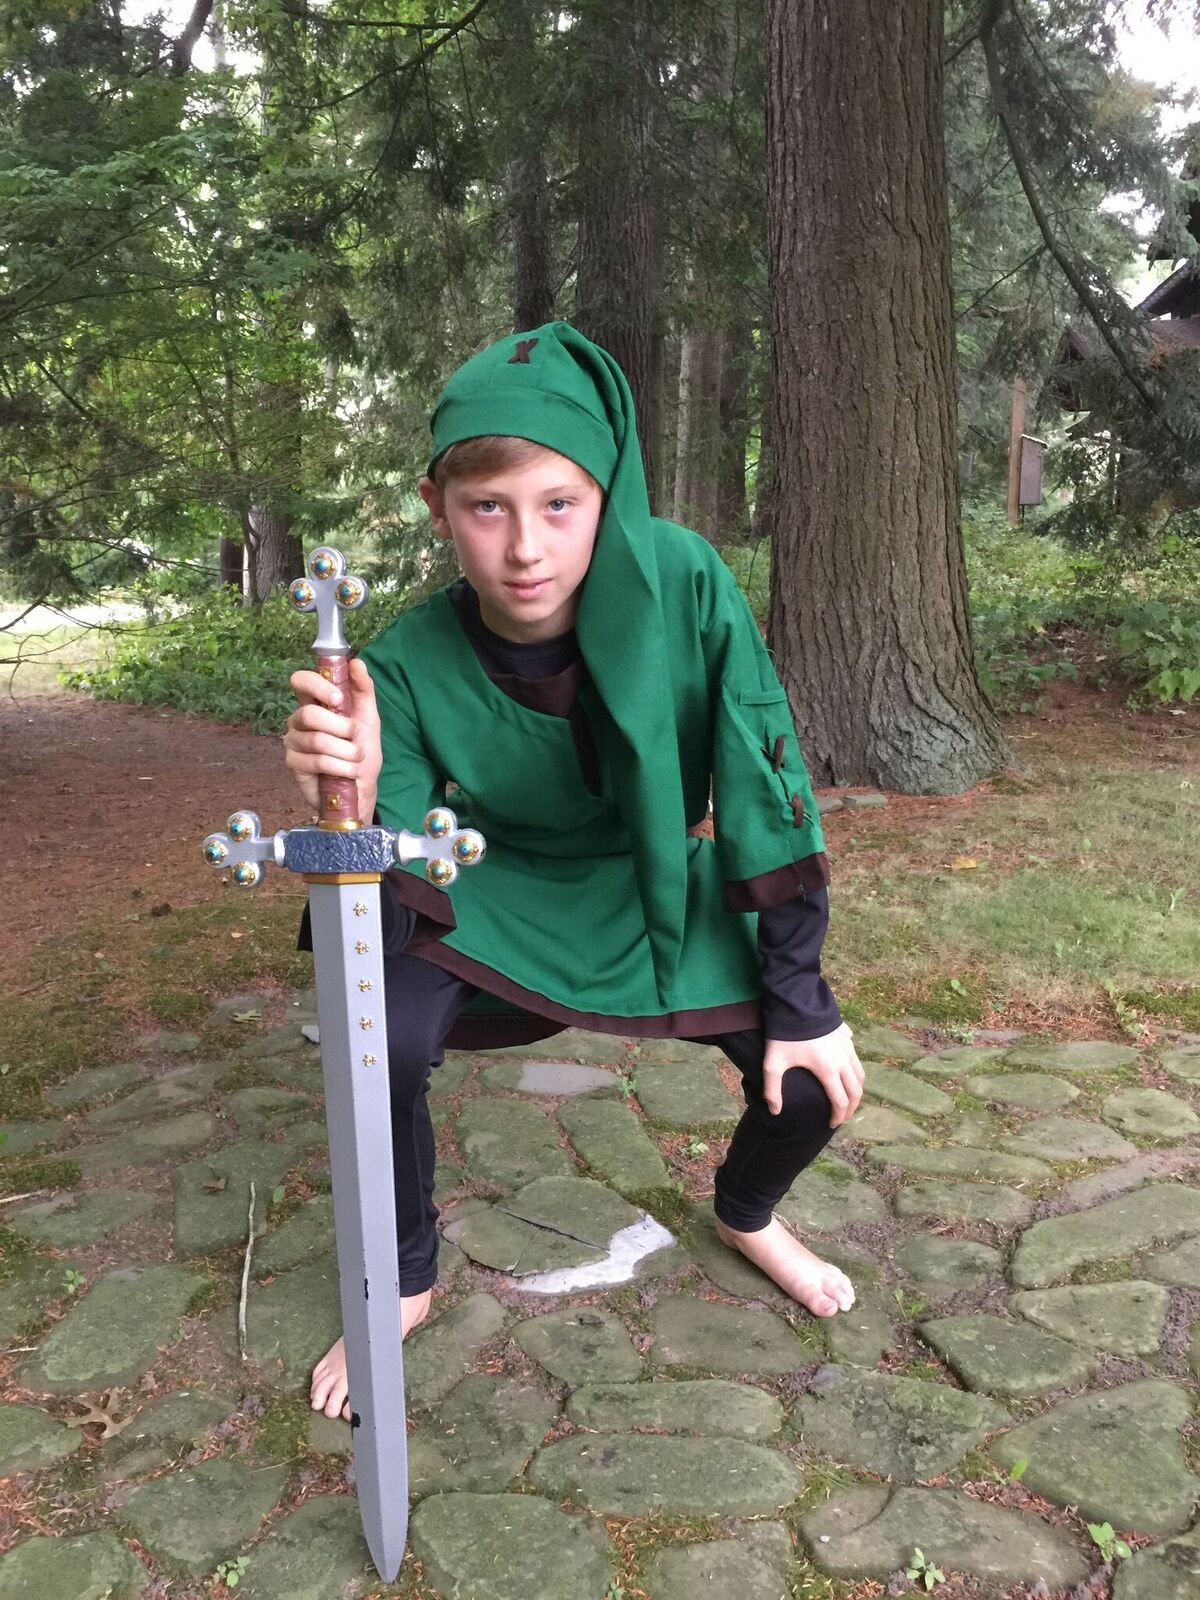 Elf Warrior aka Link costume by Charades with Disguise Sword, available at FeeFiFoFun Costume Concierge.